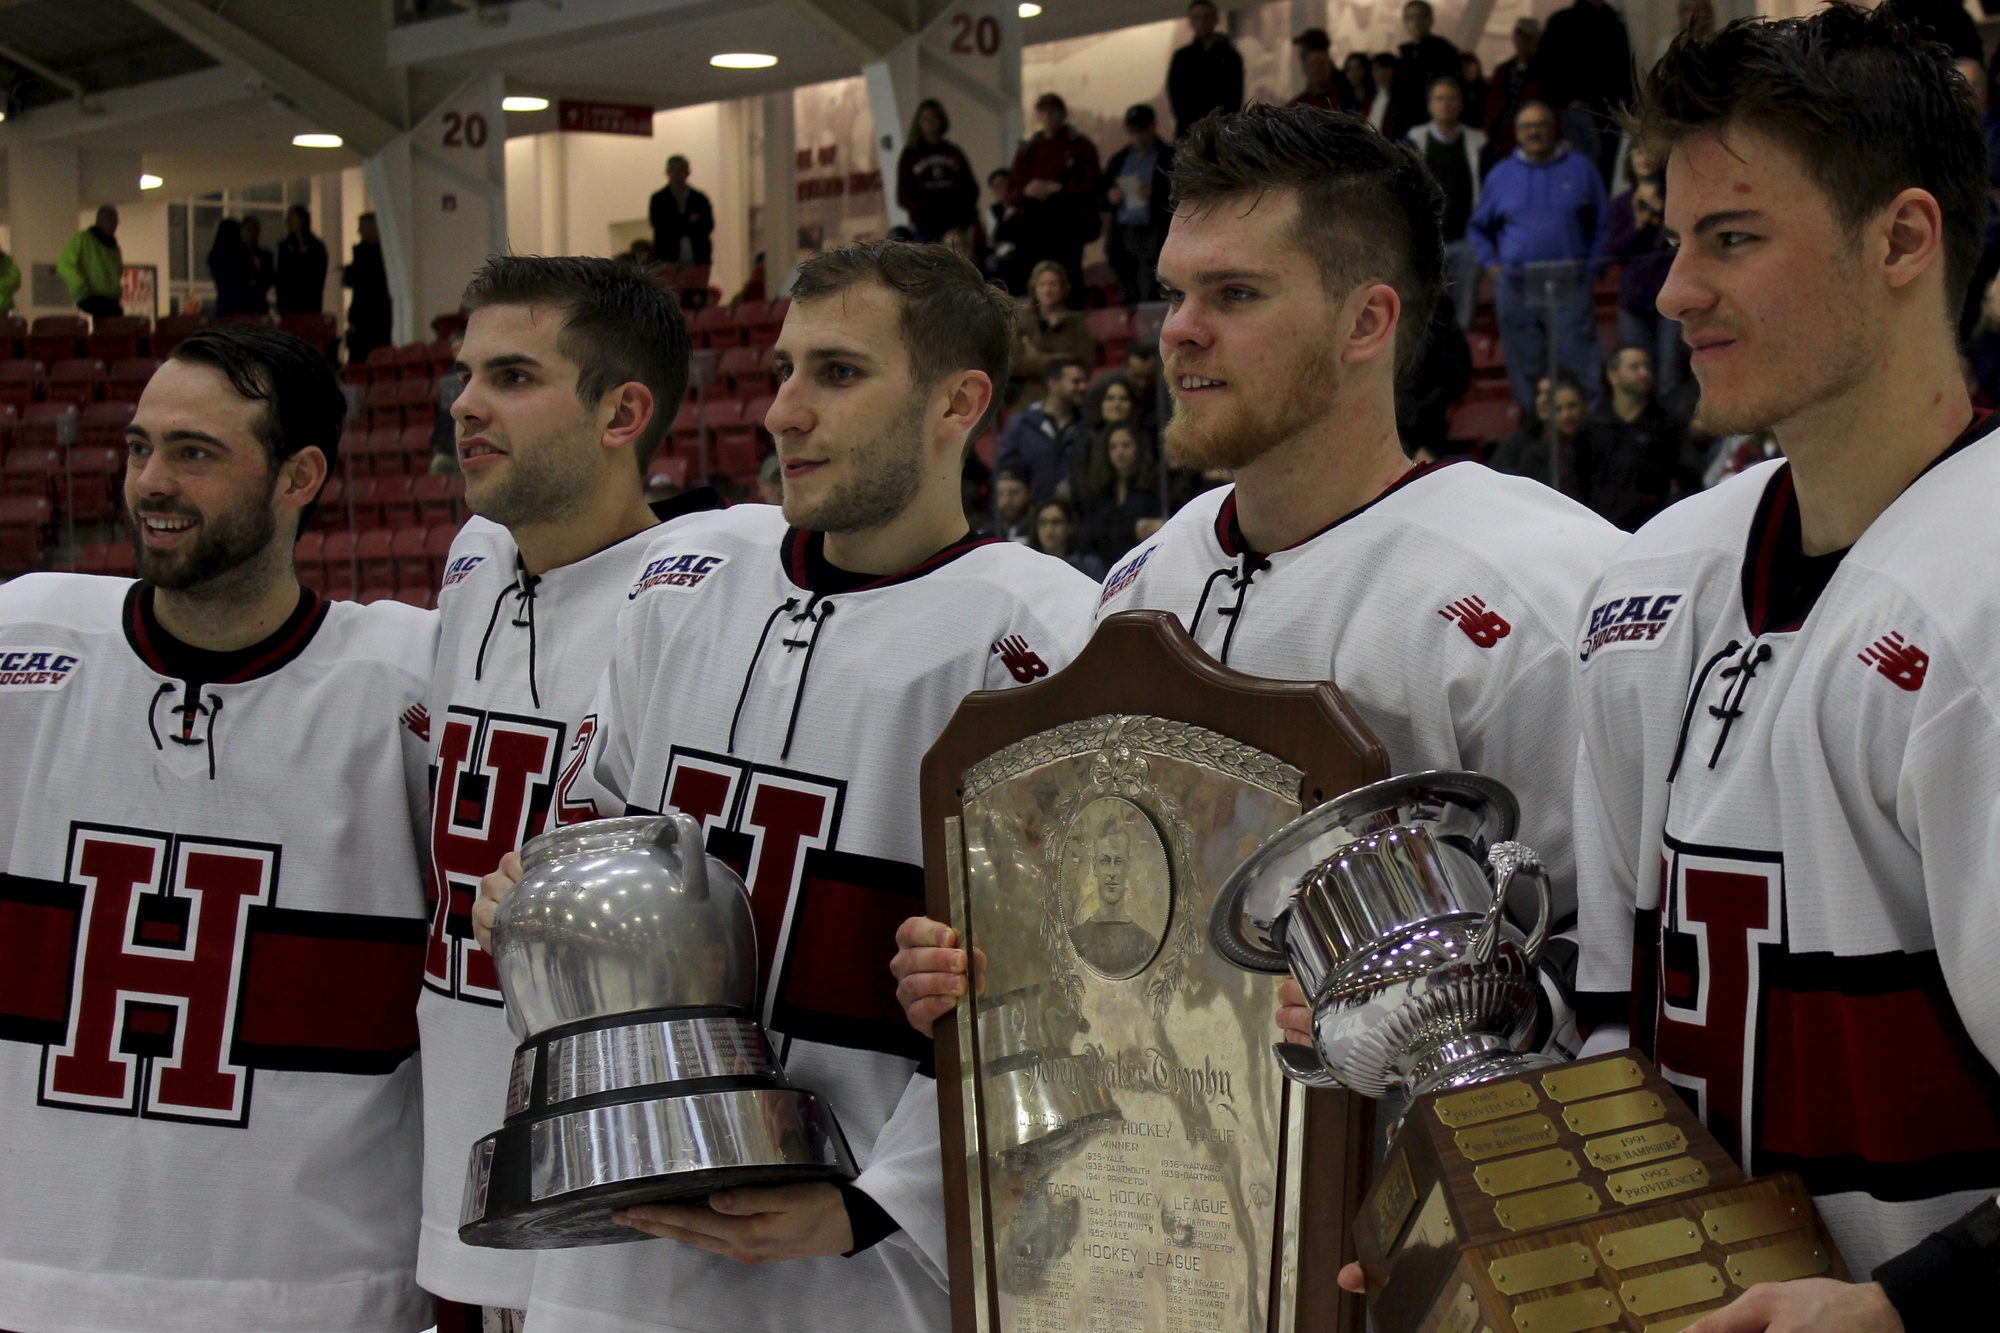 Phil Zielonka holds the Beanpot trophy, Sean Malone holds the Ivy League championship trophy, and Tyler Moy holds a stand-in for the ECAC regular-season championship trophy.